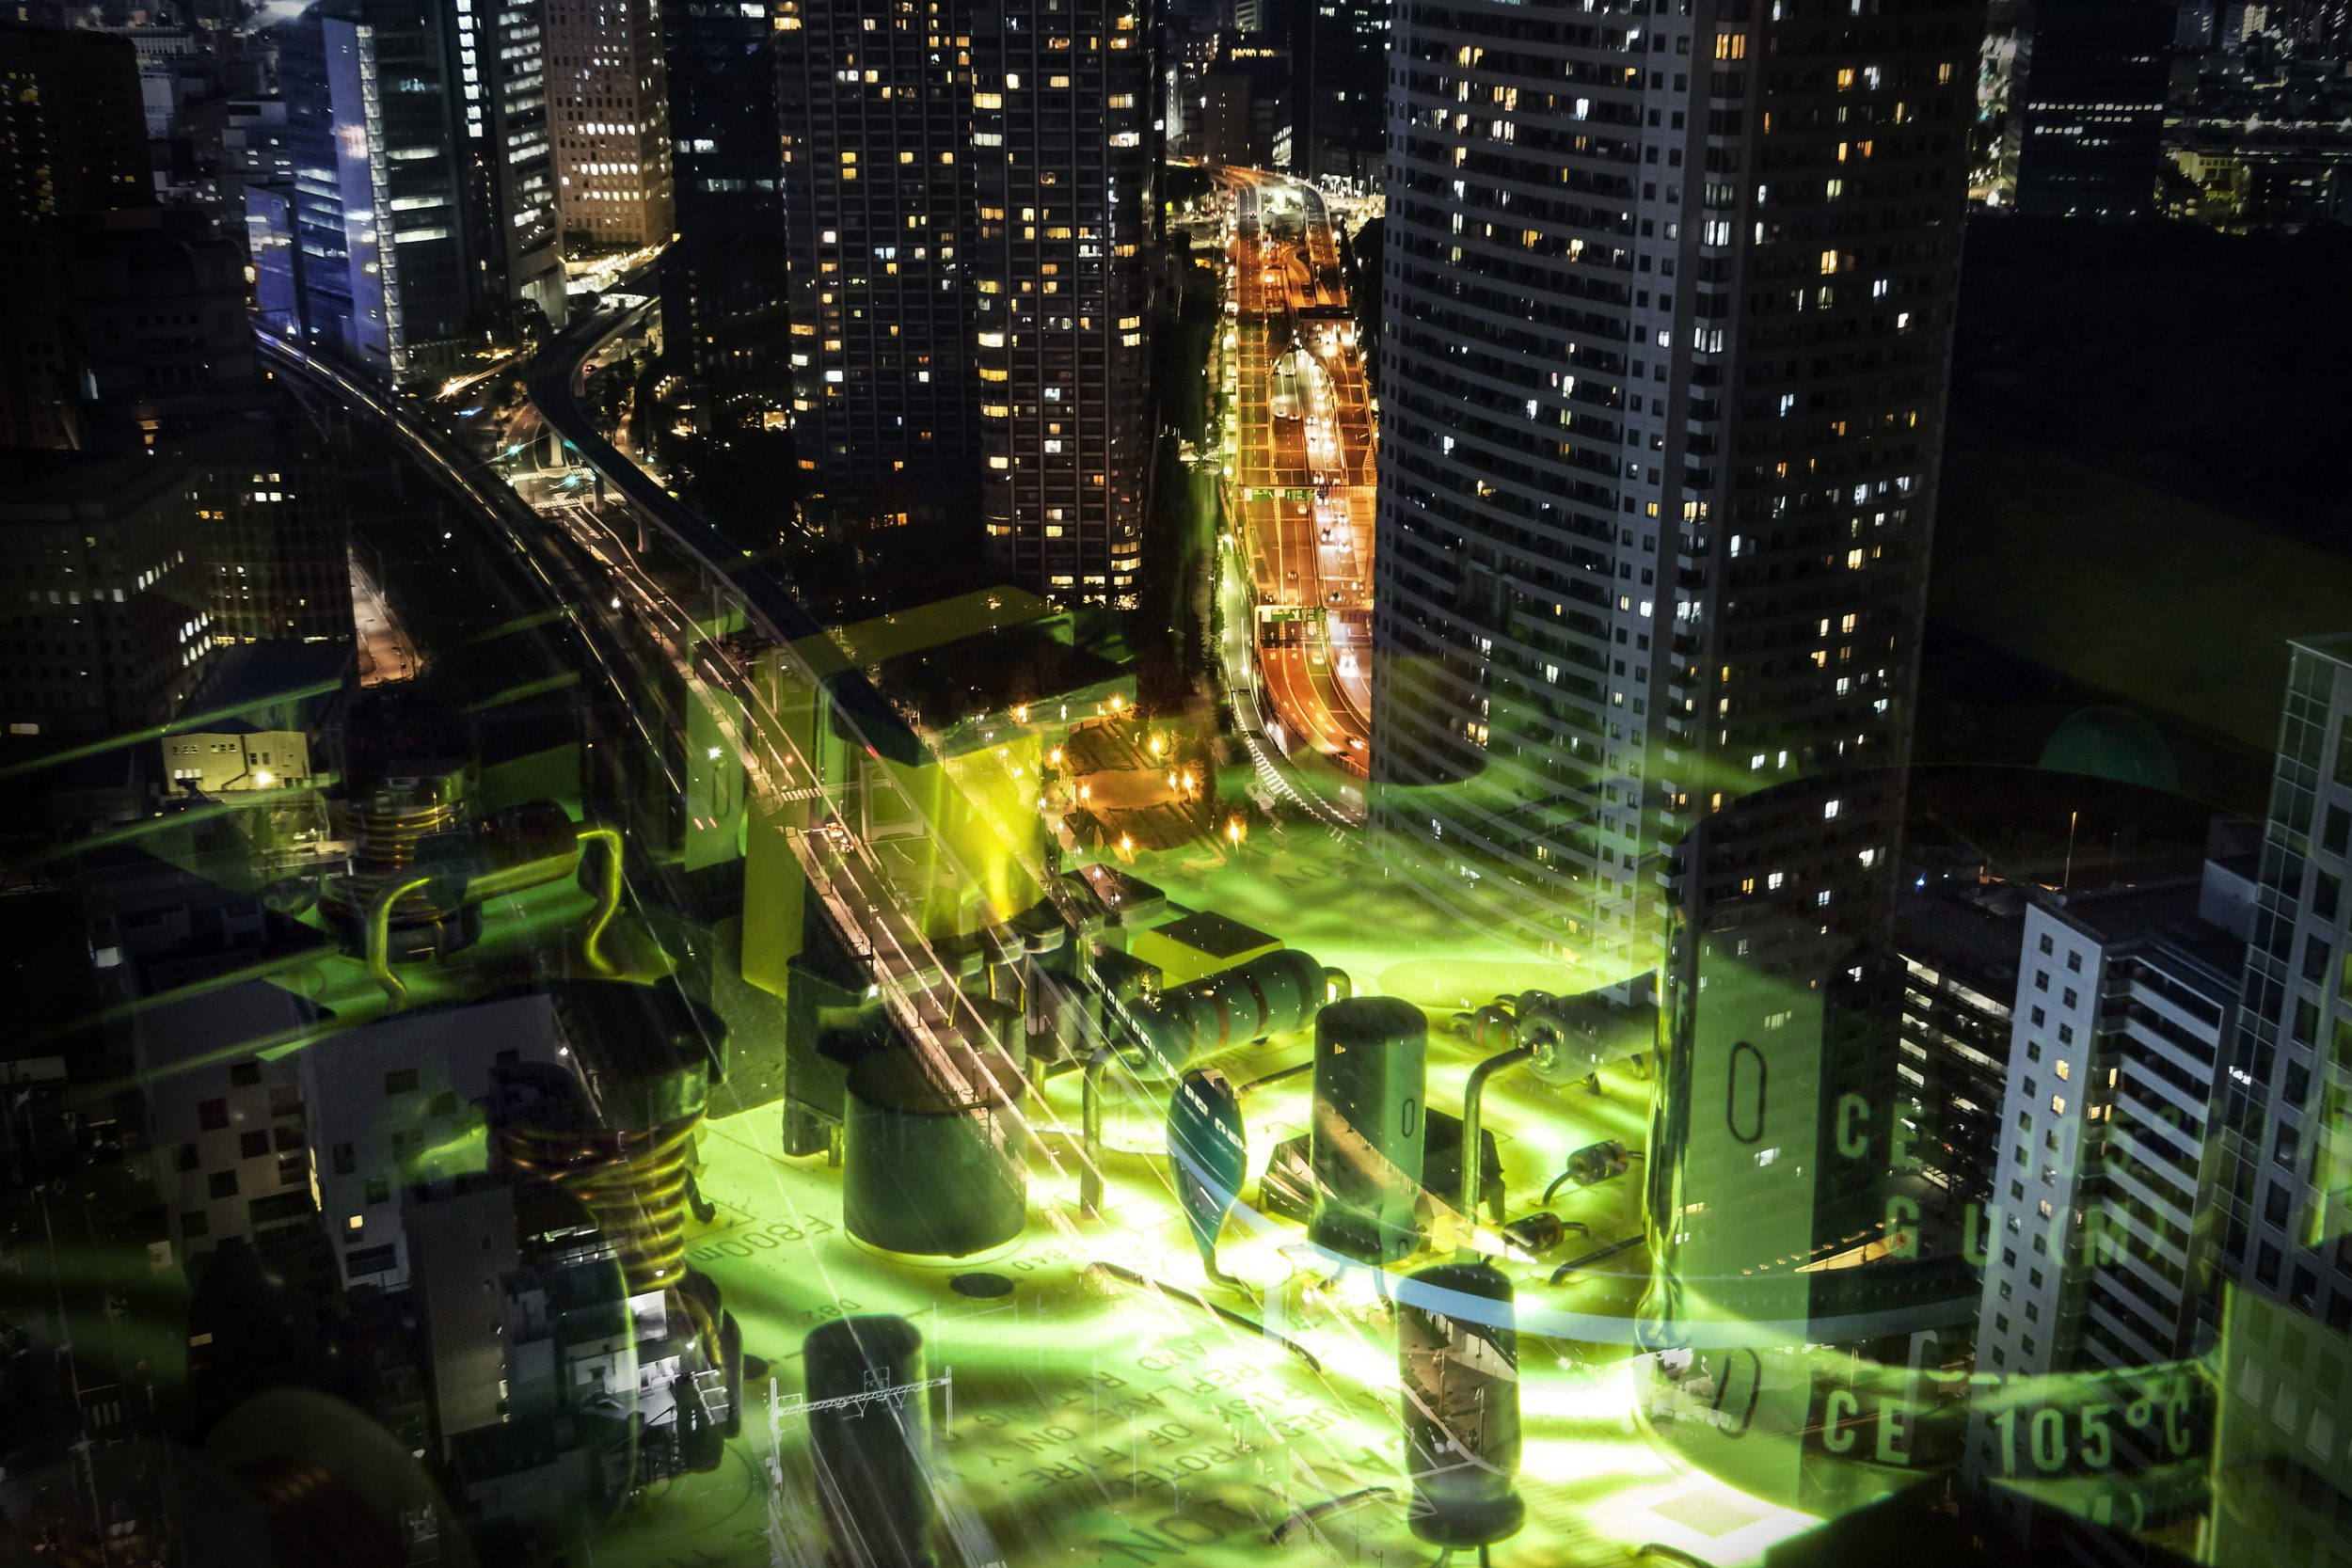 fusion of modern cityscape and electric circuit board, smart city, smart grid, technological abstract image visual